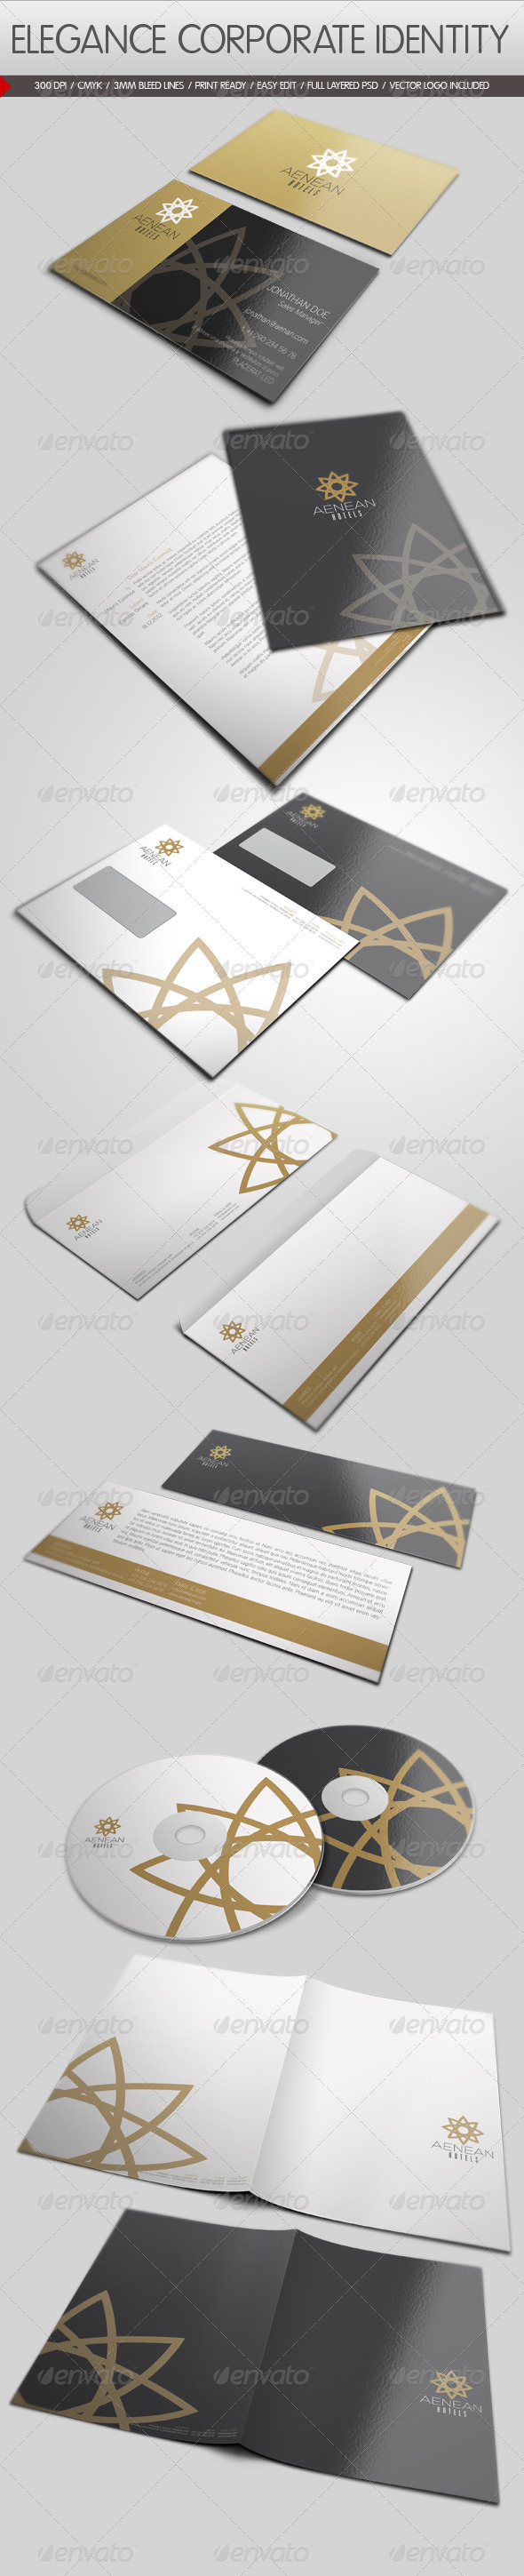 Elegance Corporate Identity - Stationery Print Templates